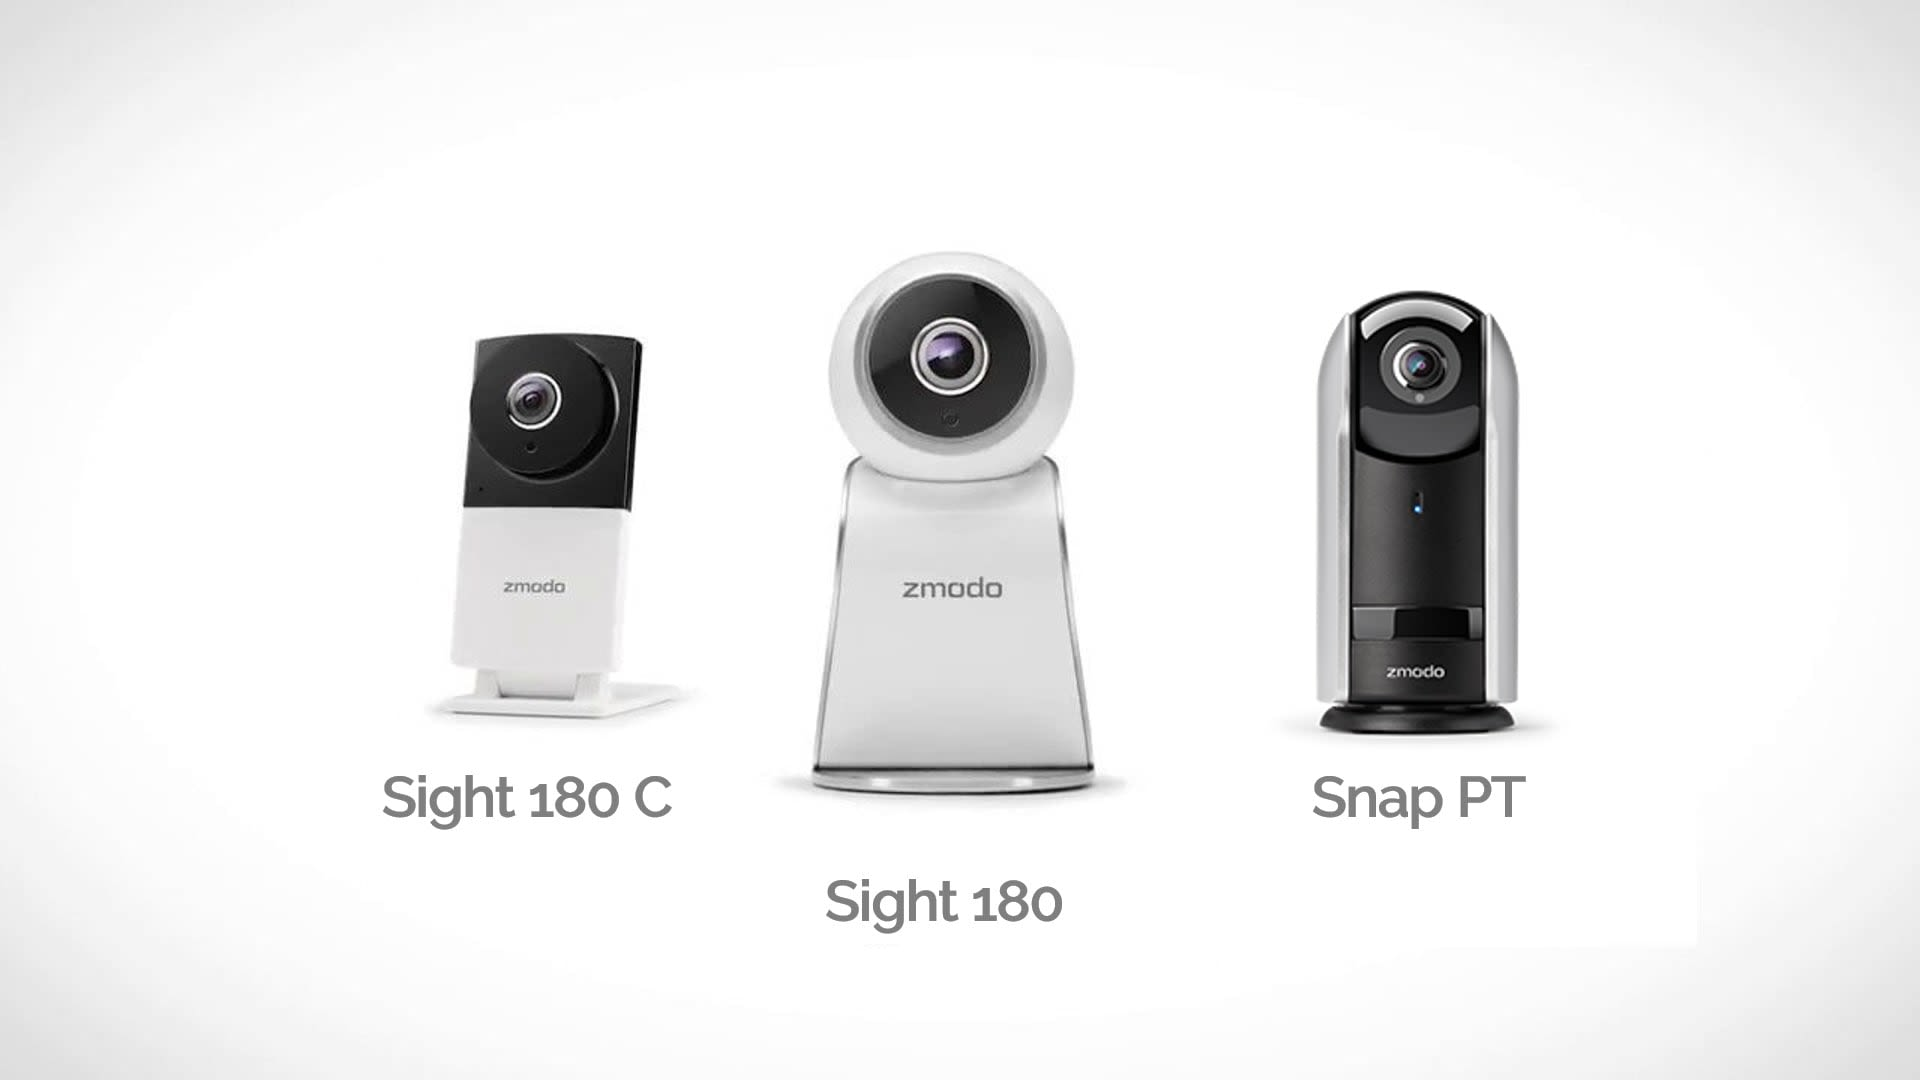 Zmodo Sight 180 Full HD 1080p Wireless Security Camera System Two Way Audio 1...